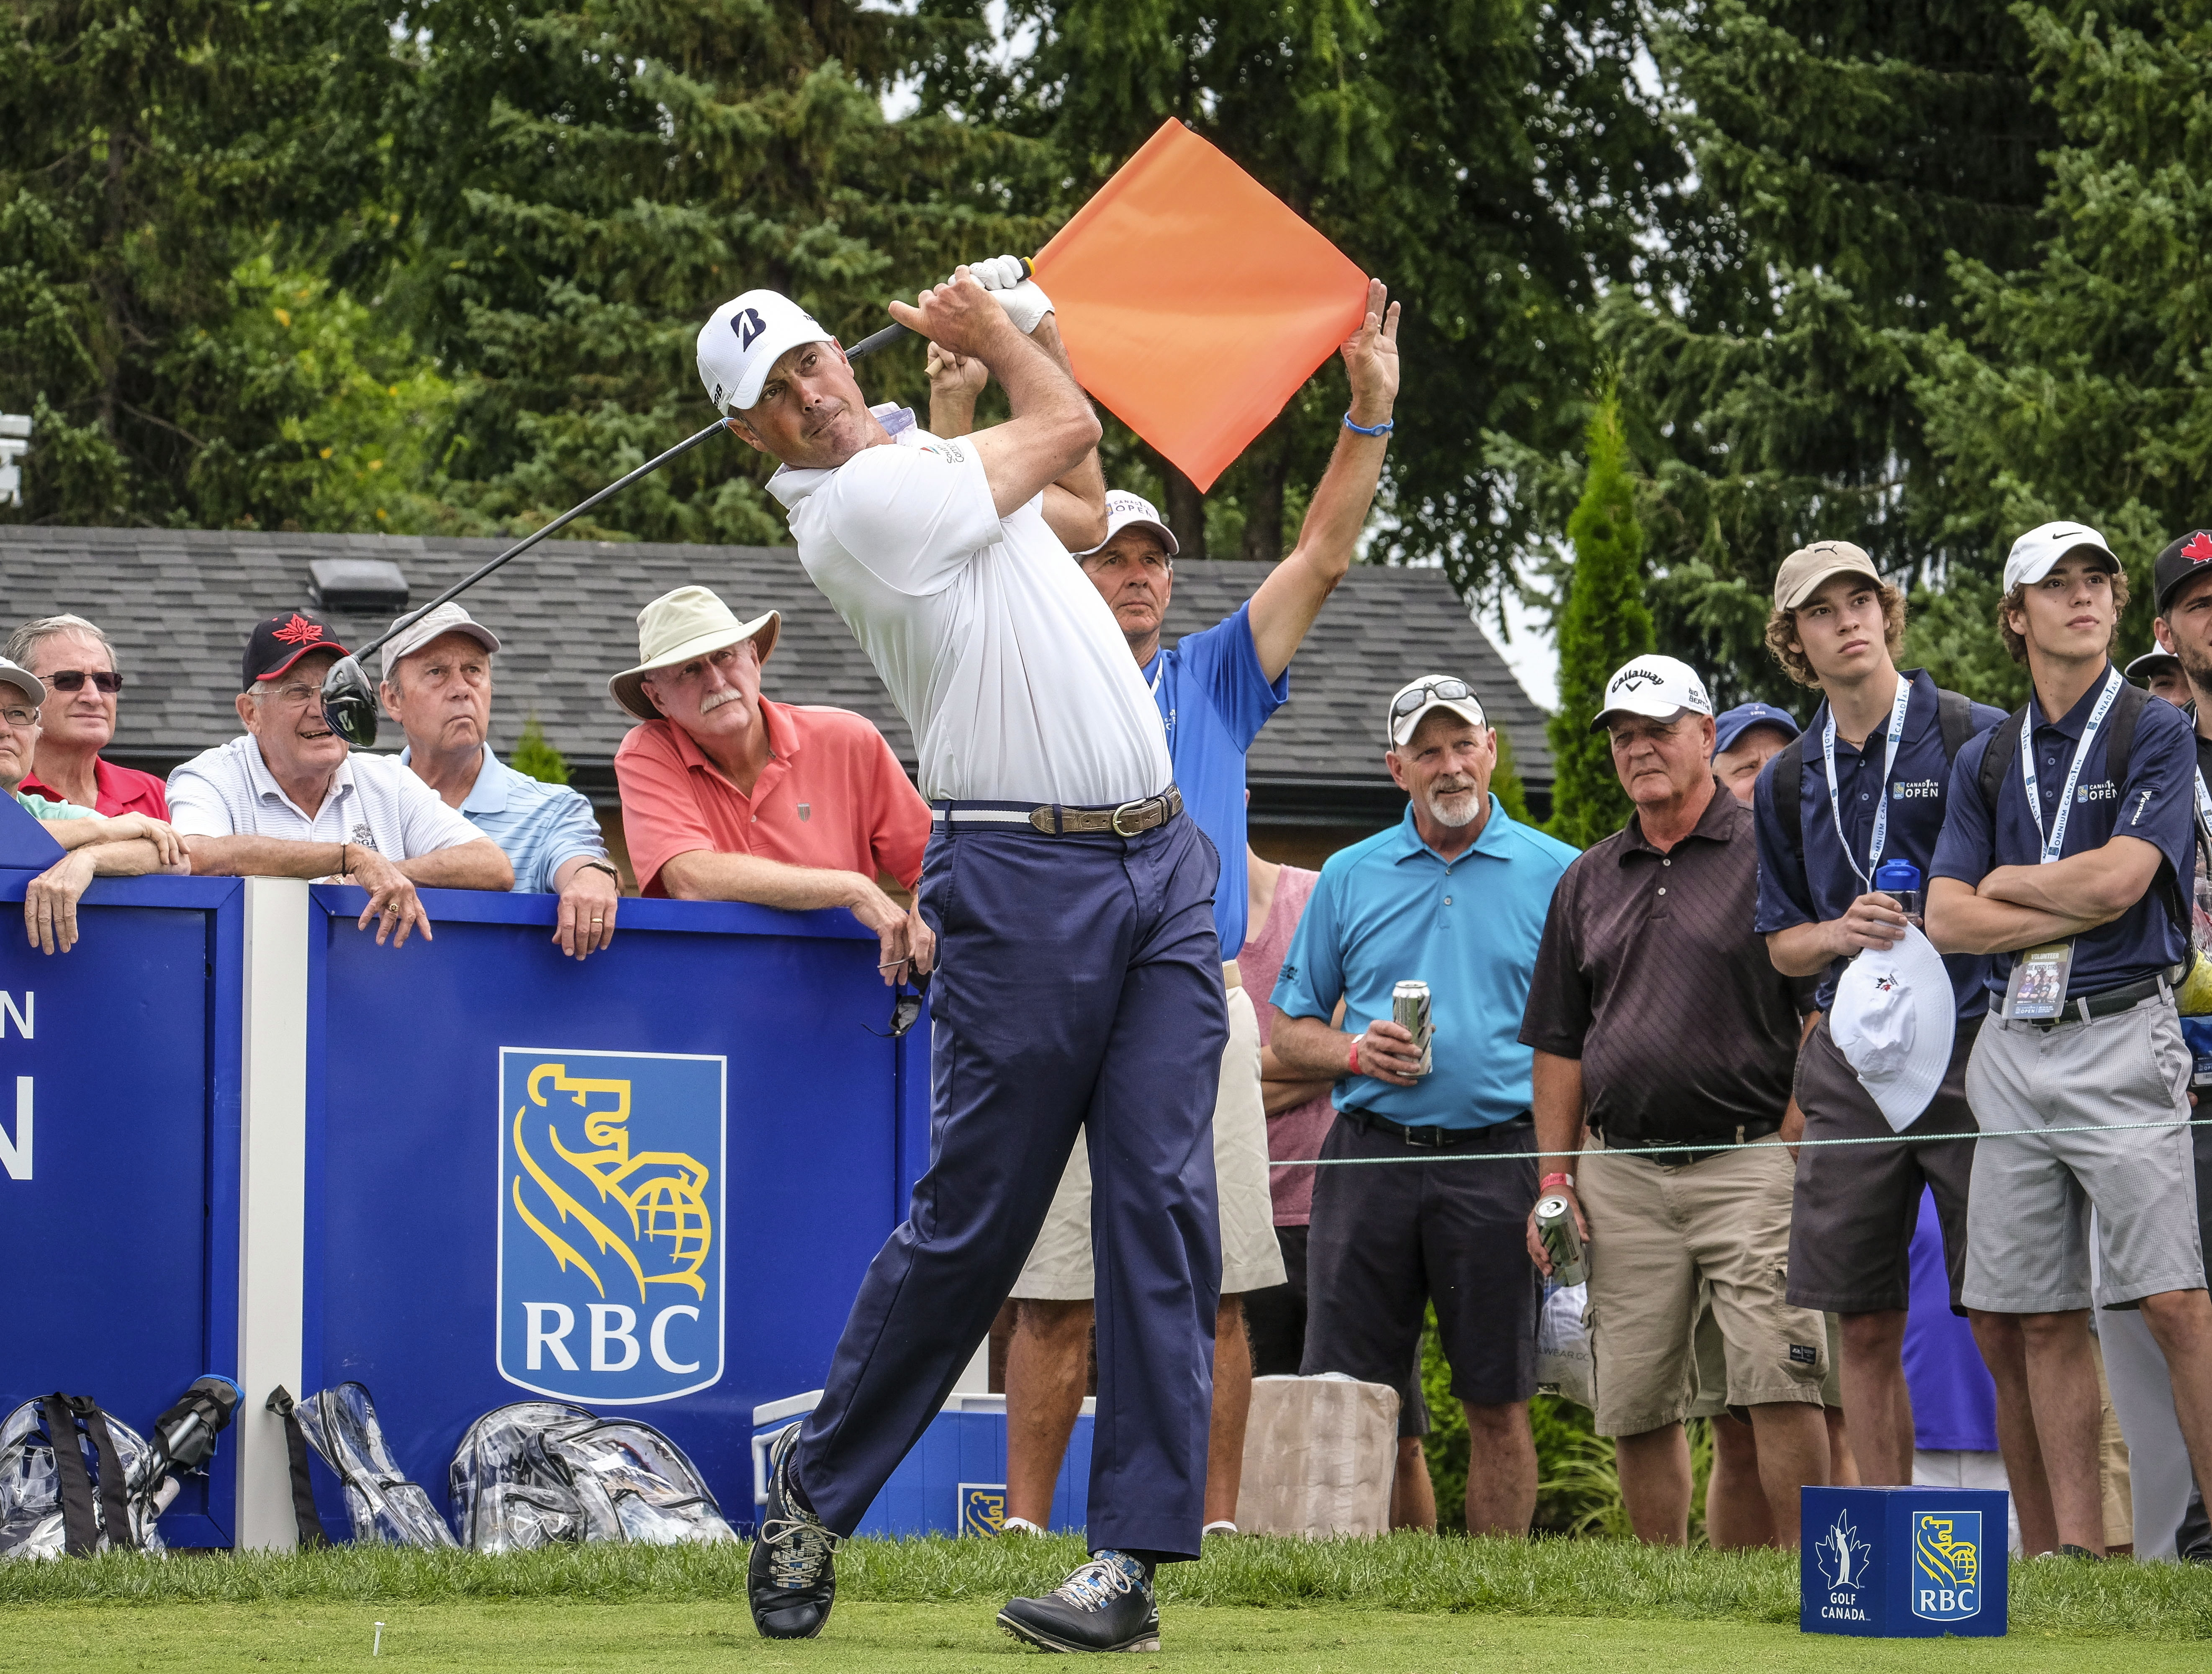 Matt Kuchar of the United States hits from the 17th tee during the Canadian Open Pro-Am golf tournament in Oakville, Ontario, Wednesday July 26, 2017. (David Cooper/The Canadian Press via AP)